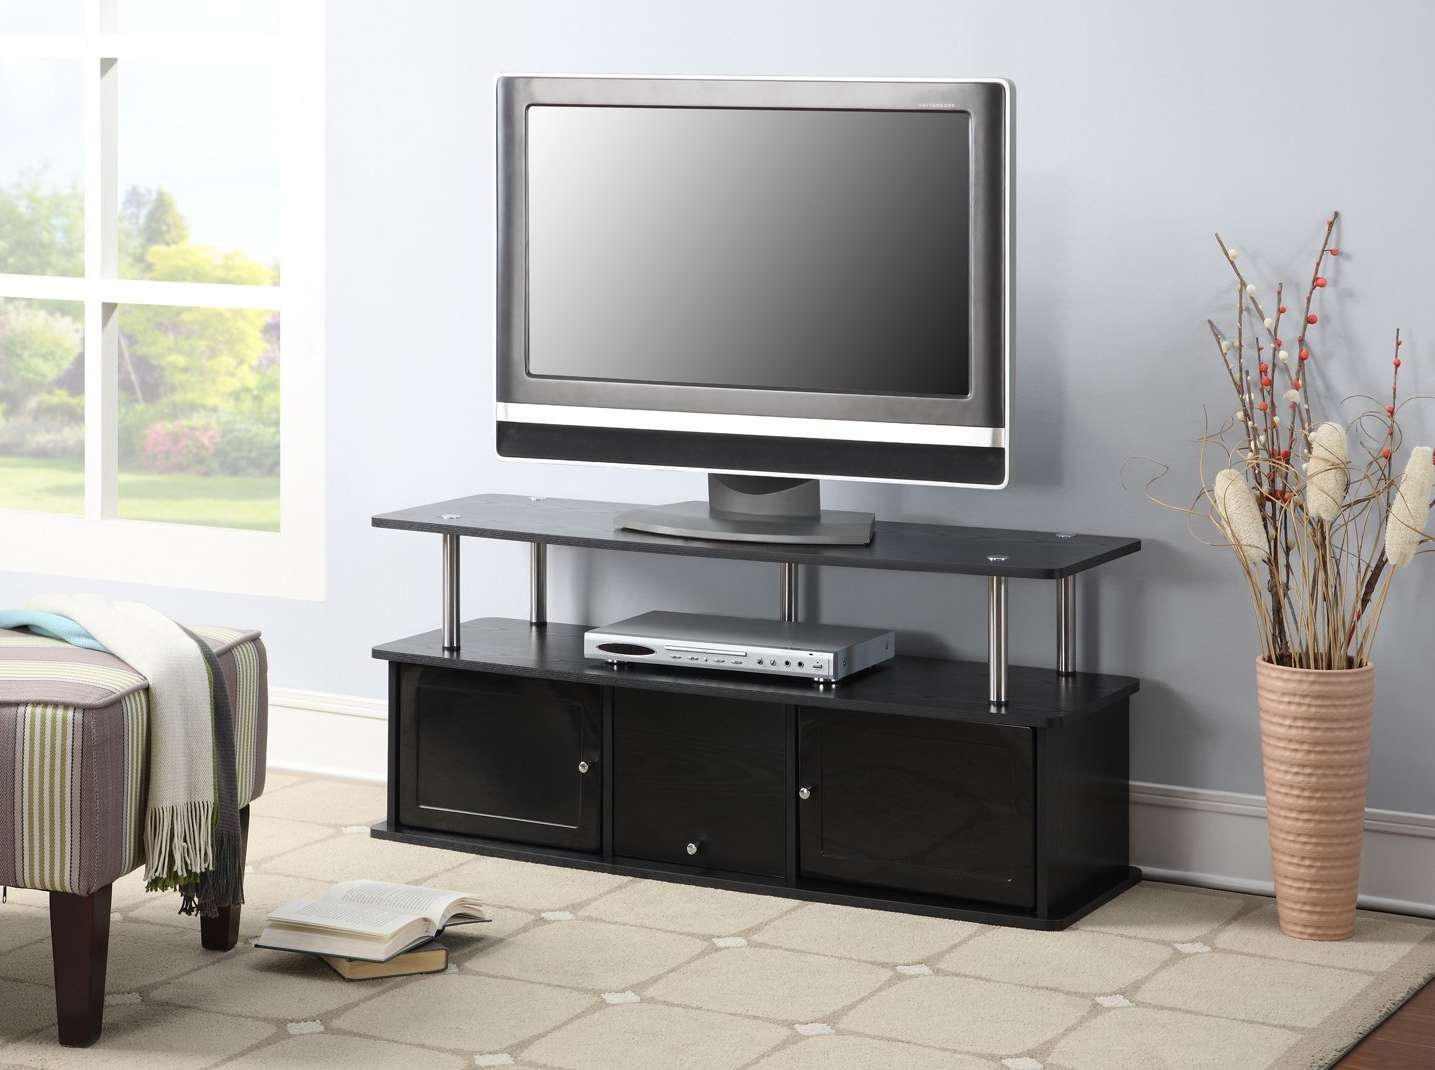 Black Small Tv Stands Tags : 40 Stunning Small Black Tv Stand Regarding Small Black Tv Cabinets (View 19 of 20)